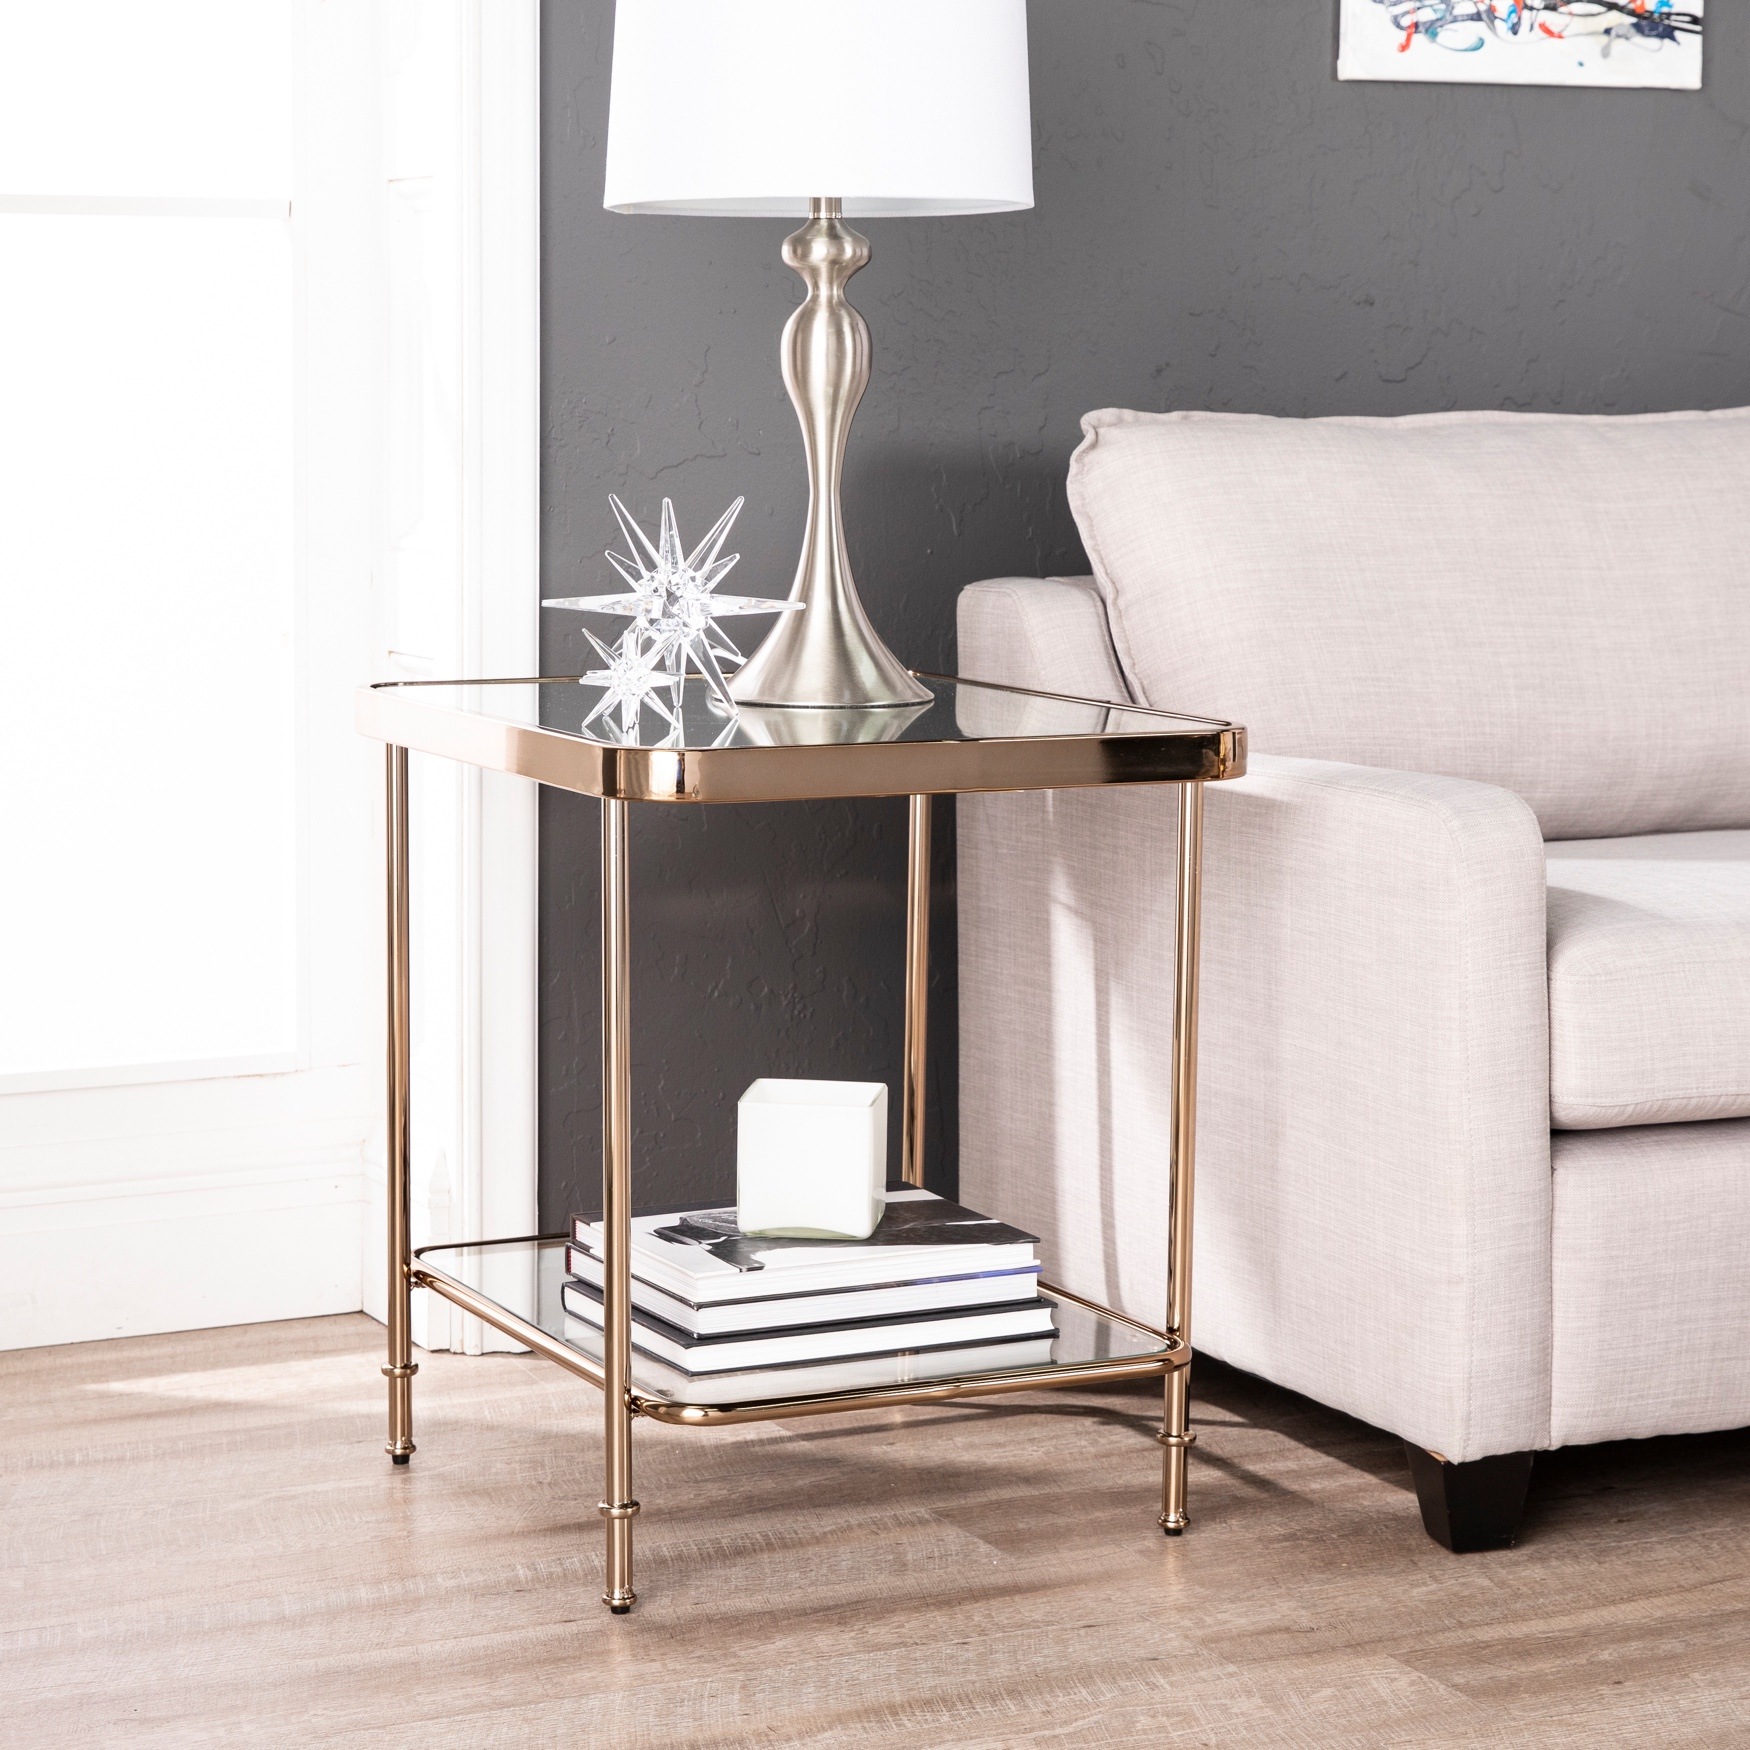 Sandlin Mirrored End Table, CHAMPAGNE